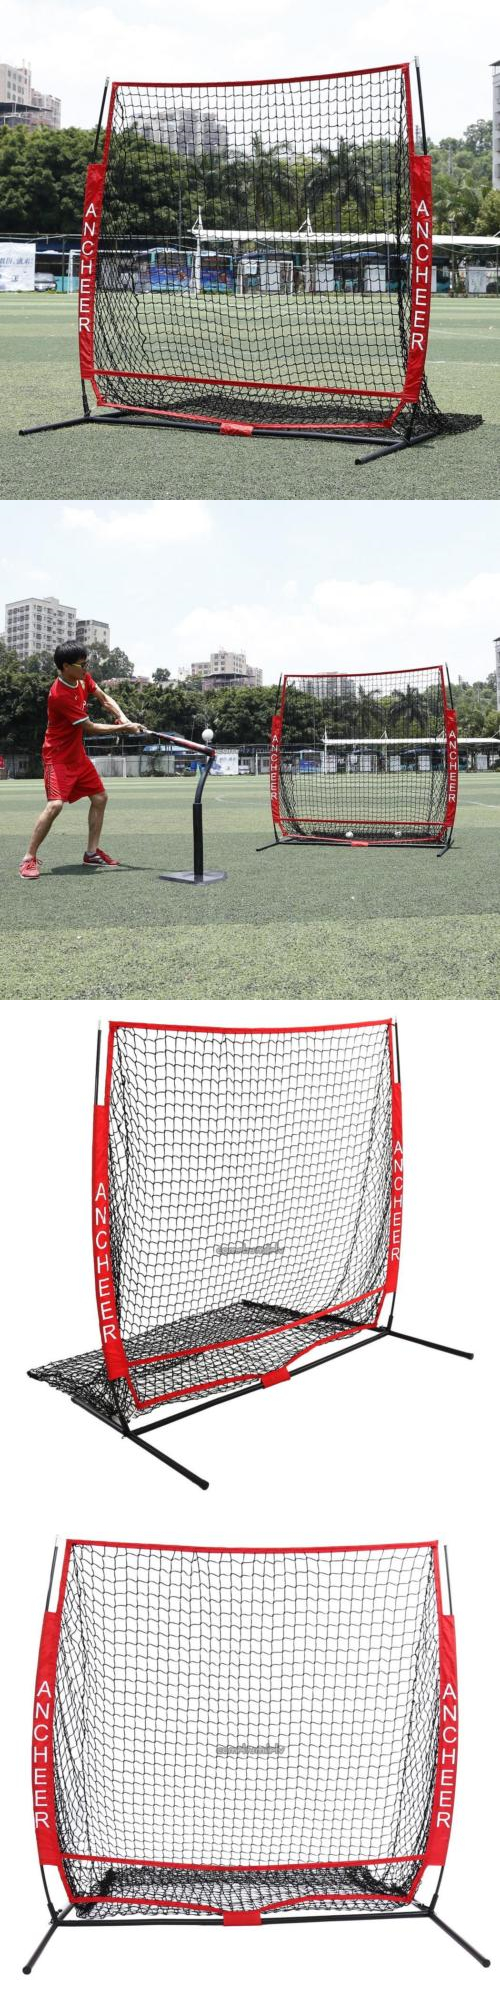 Batting Cages and Netting 50809: 5 X 5 Baseball Training Net ...